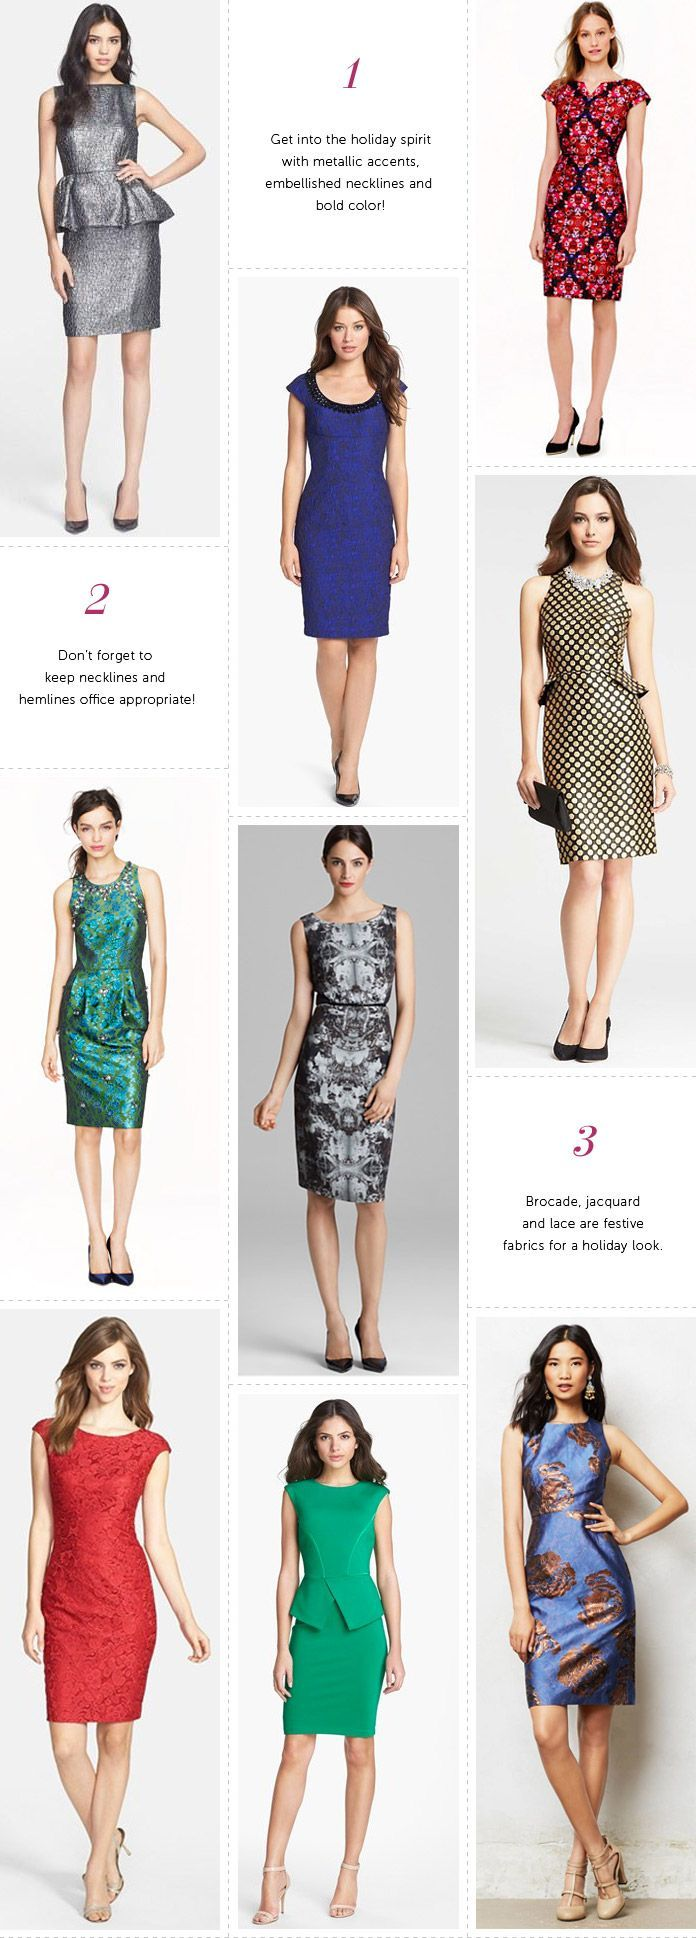 Professionelle: Holiday Work Dresses